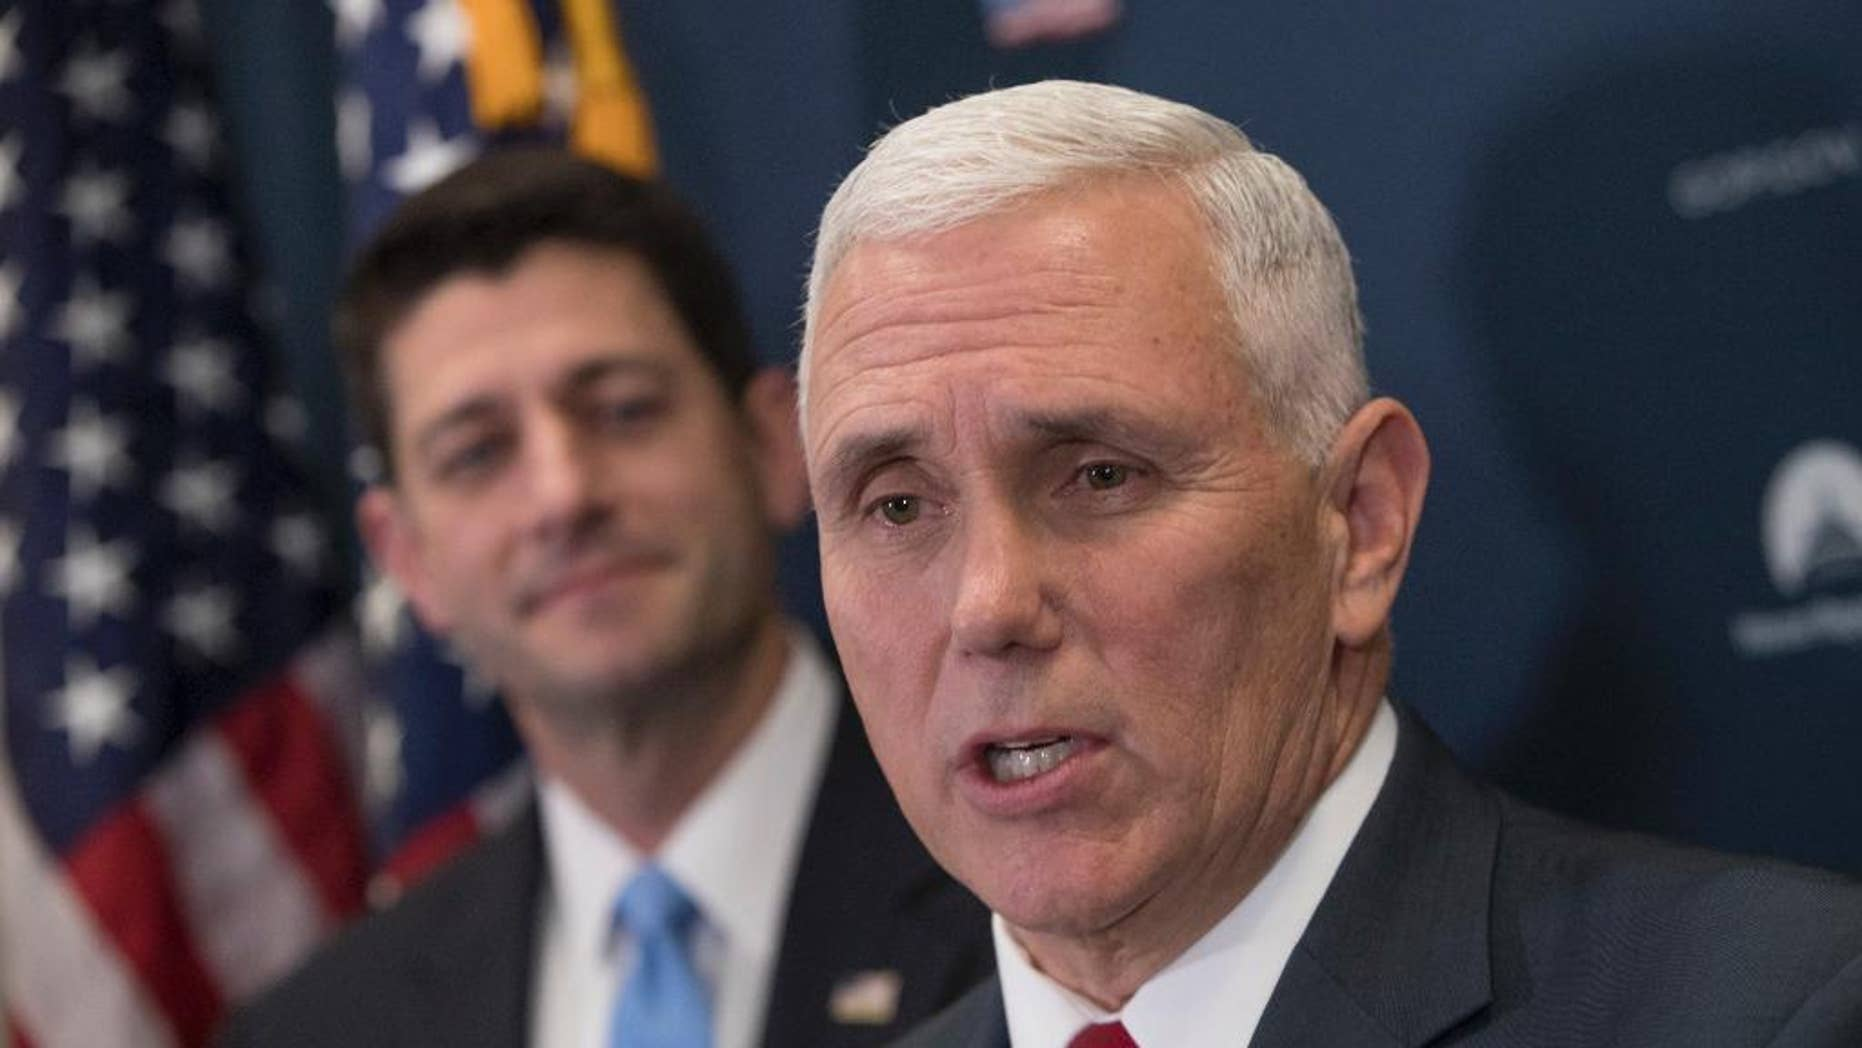 In this Jan. 4, 2017 photo, Vice President-elect Mike Pence, joined by House Speaker Paul Ryan of Wis., speaks during a news conference on Capitol Hill in Washington.  Mike Pence, who spent a dozen years in Congress before becoming Indiana's governor, is making frequent visits to Capitol Hill and promising close coordination with lawmakers as Donald Trump prepares to enter the White House.  (AP Photo/J. Scott Applewhite)